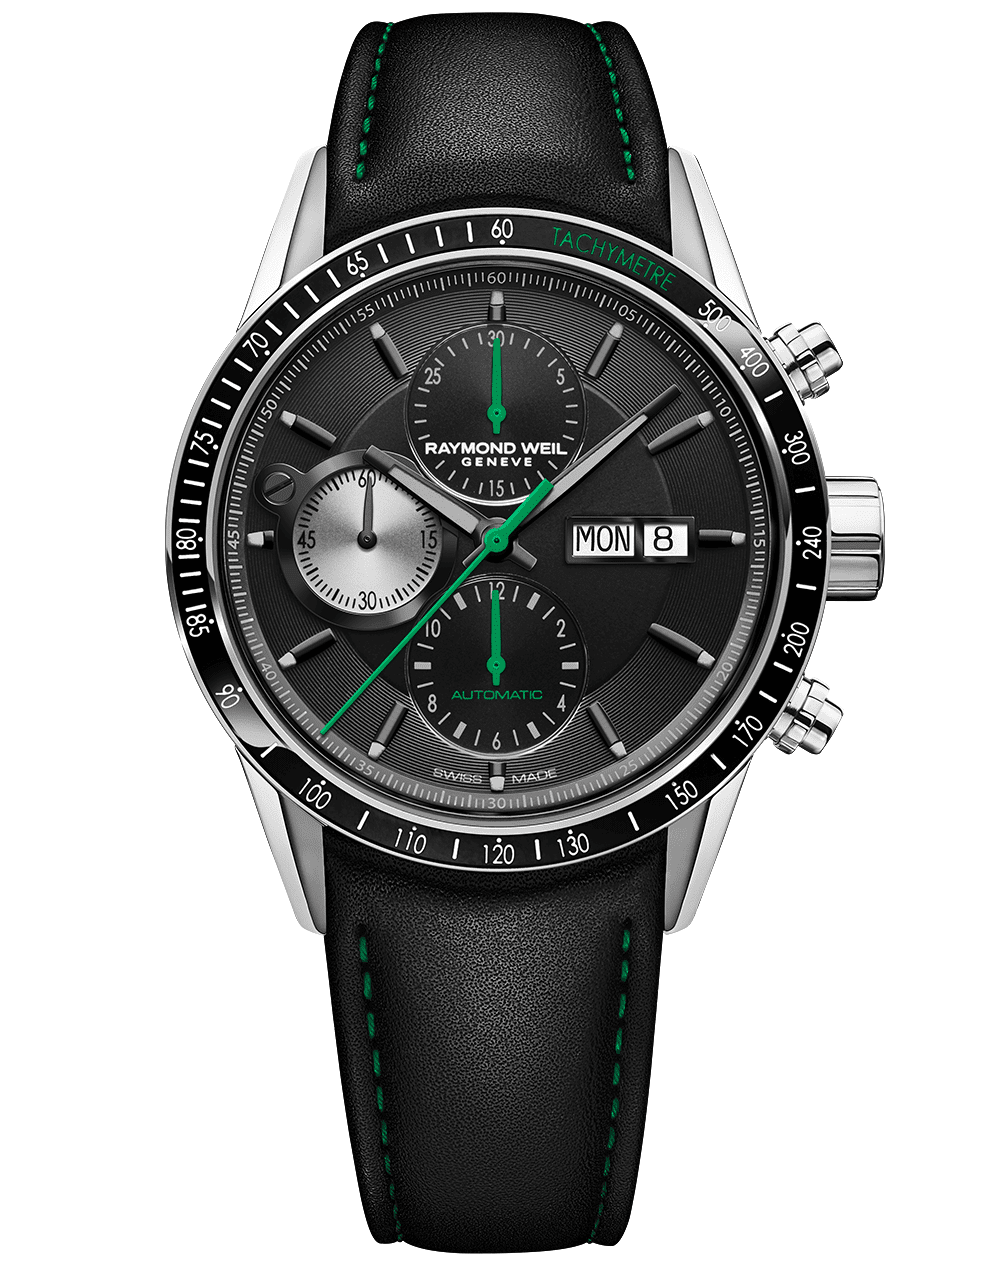 RAYMOND WEIL Freelancer Chronograph Green Hands Accents and Black Leather Strap Watch